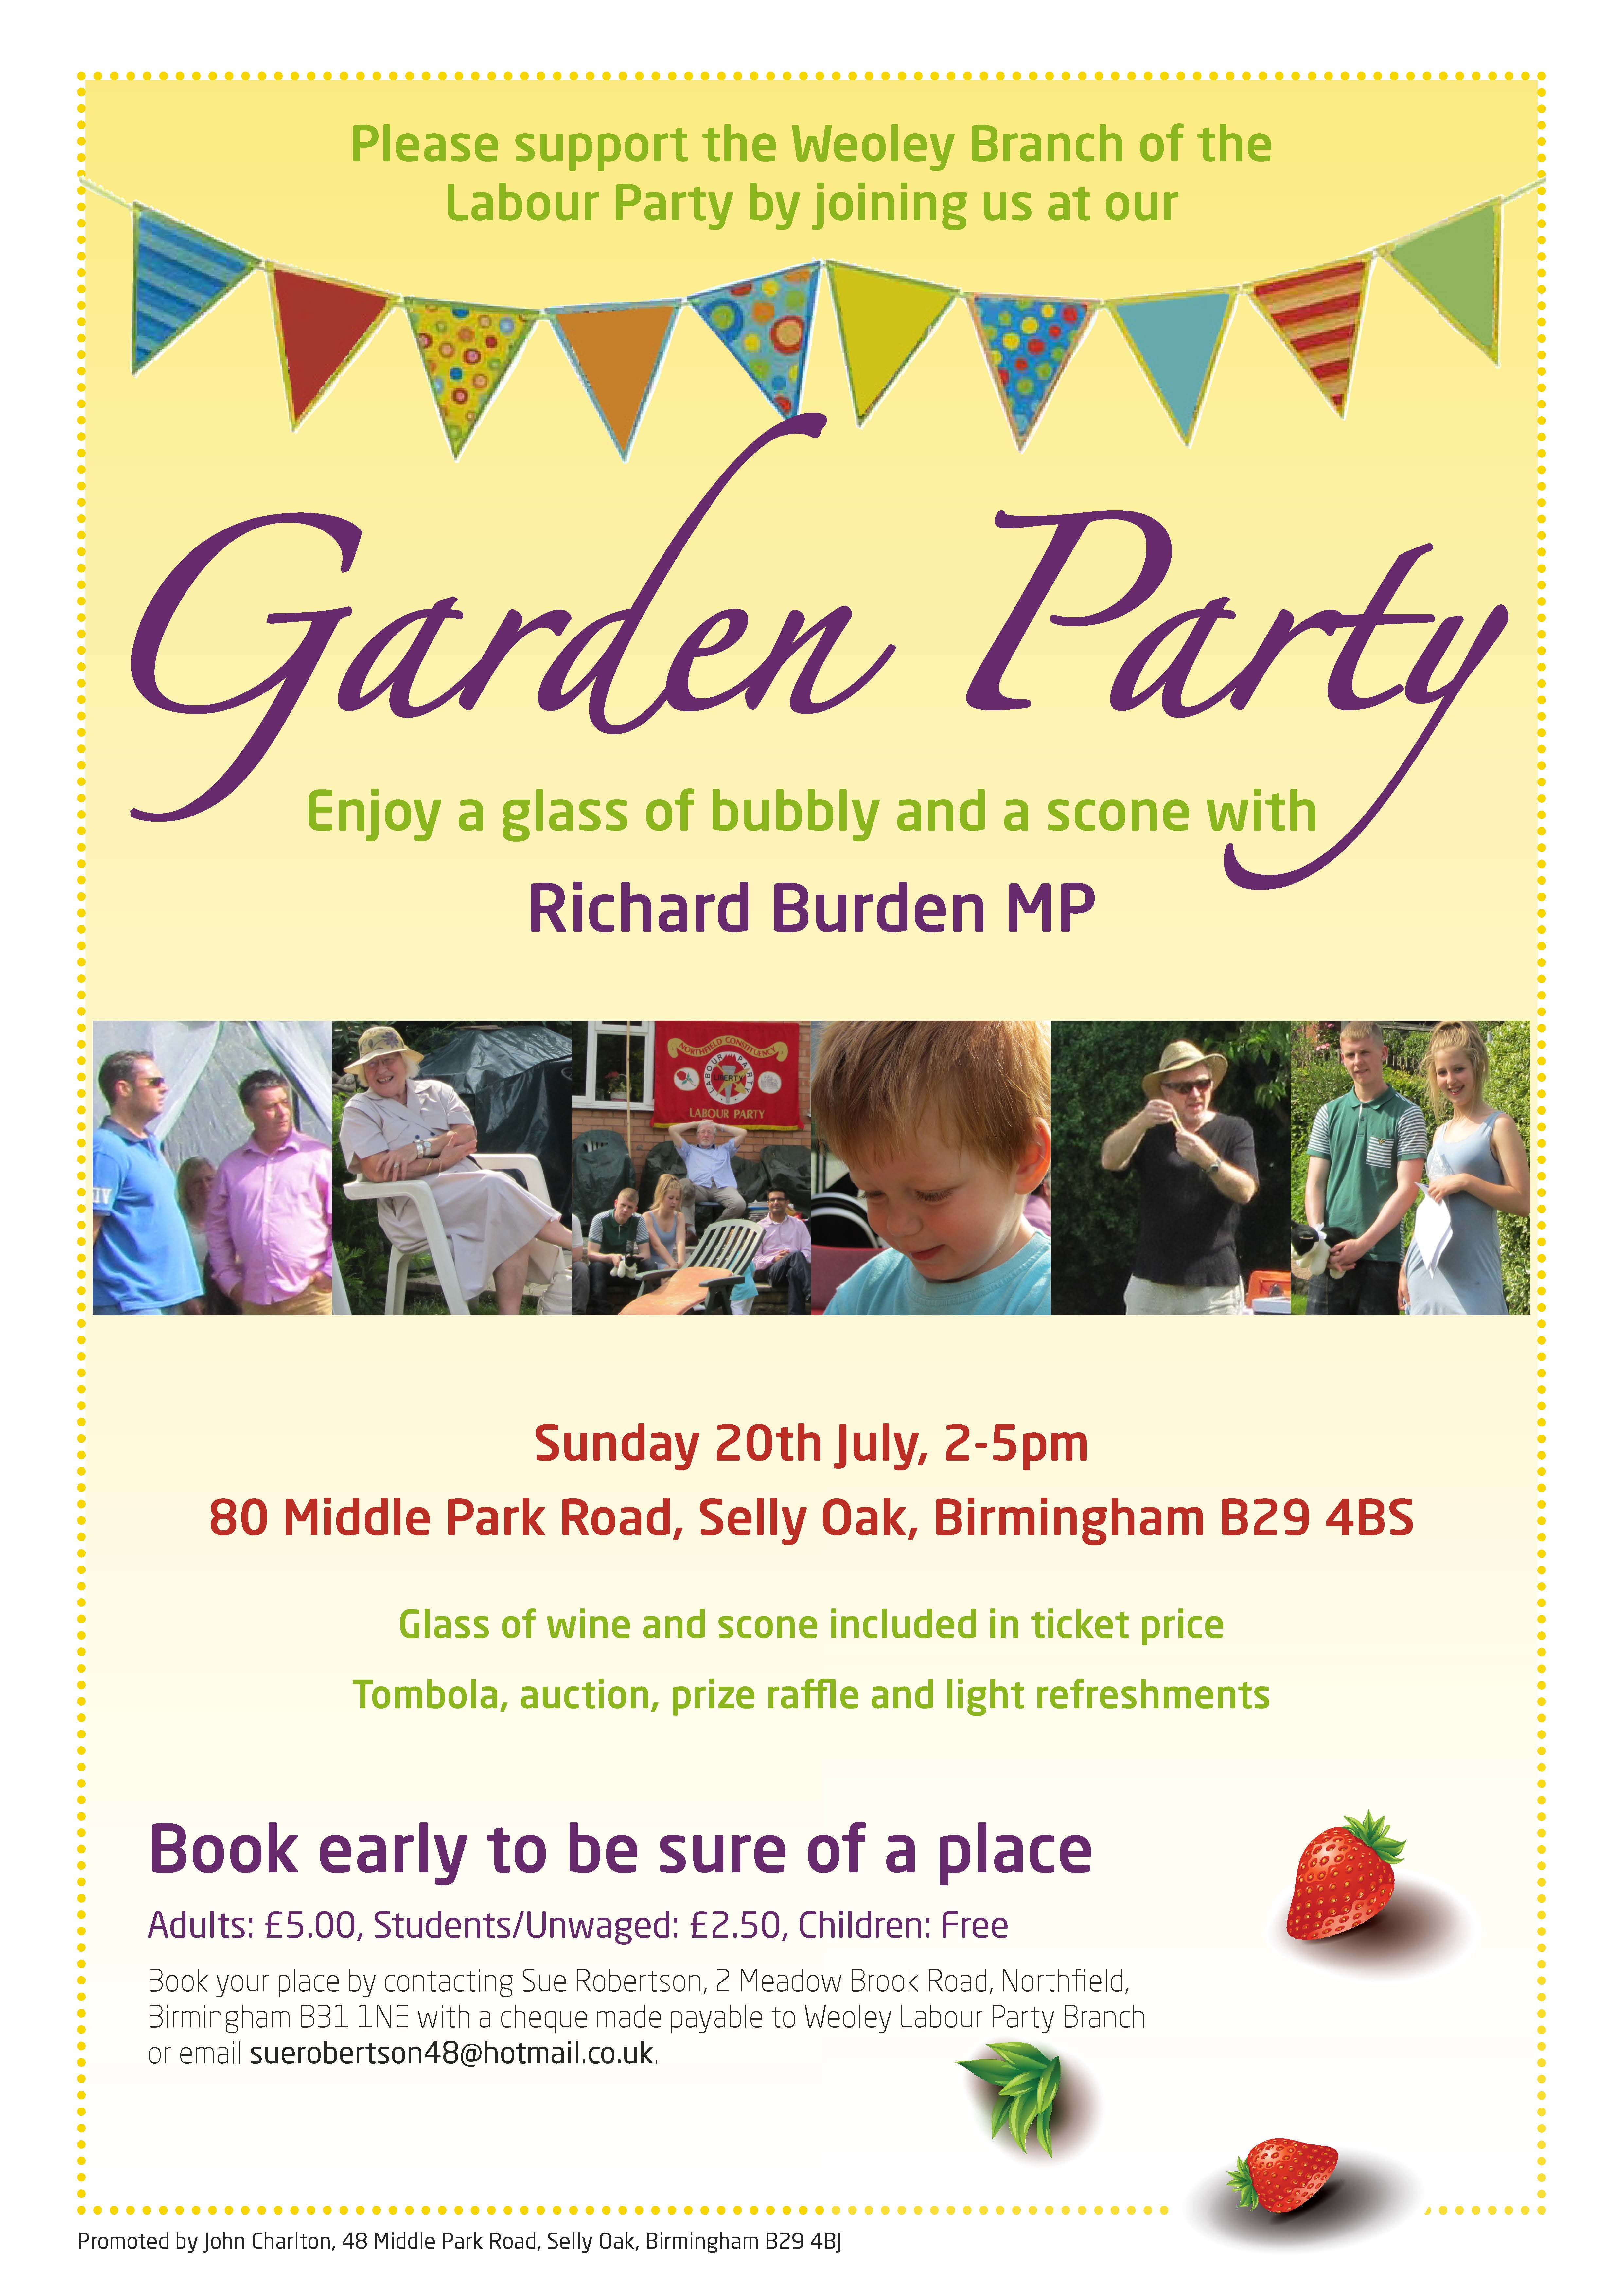 Weoley_Garden_Party_2014.jpg